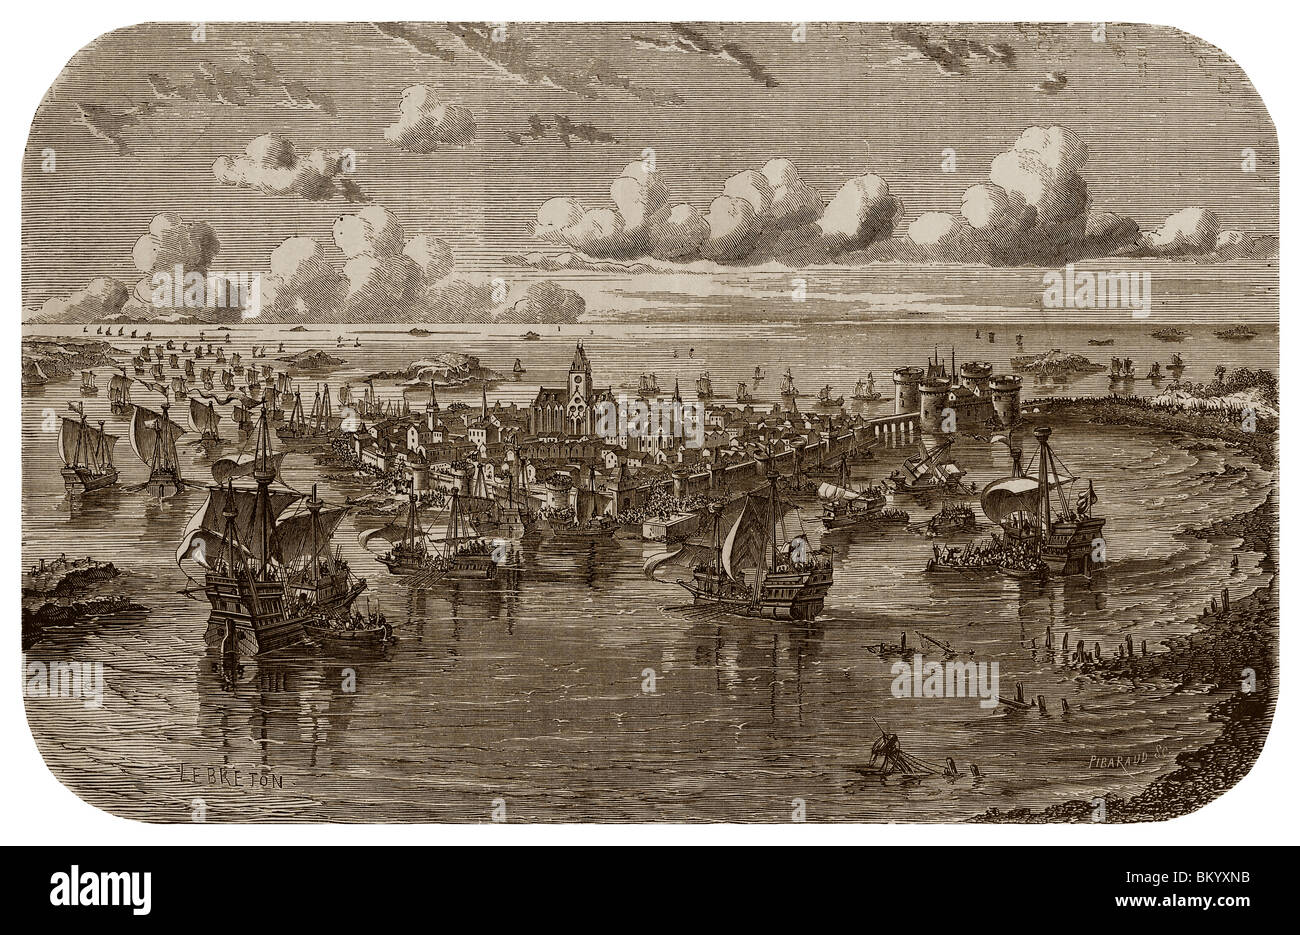 In 1376, during the Hundred Years' War, siege of Saint-Malo by the Englishmen. - Stock Image